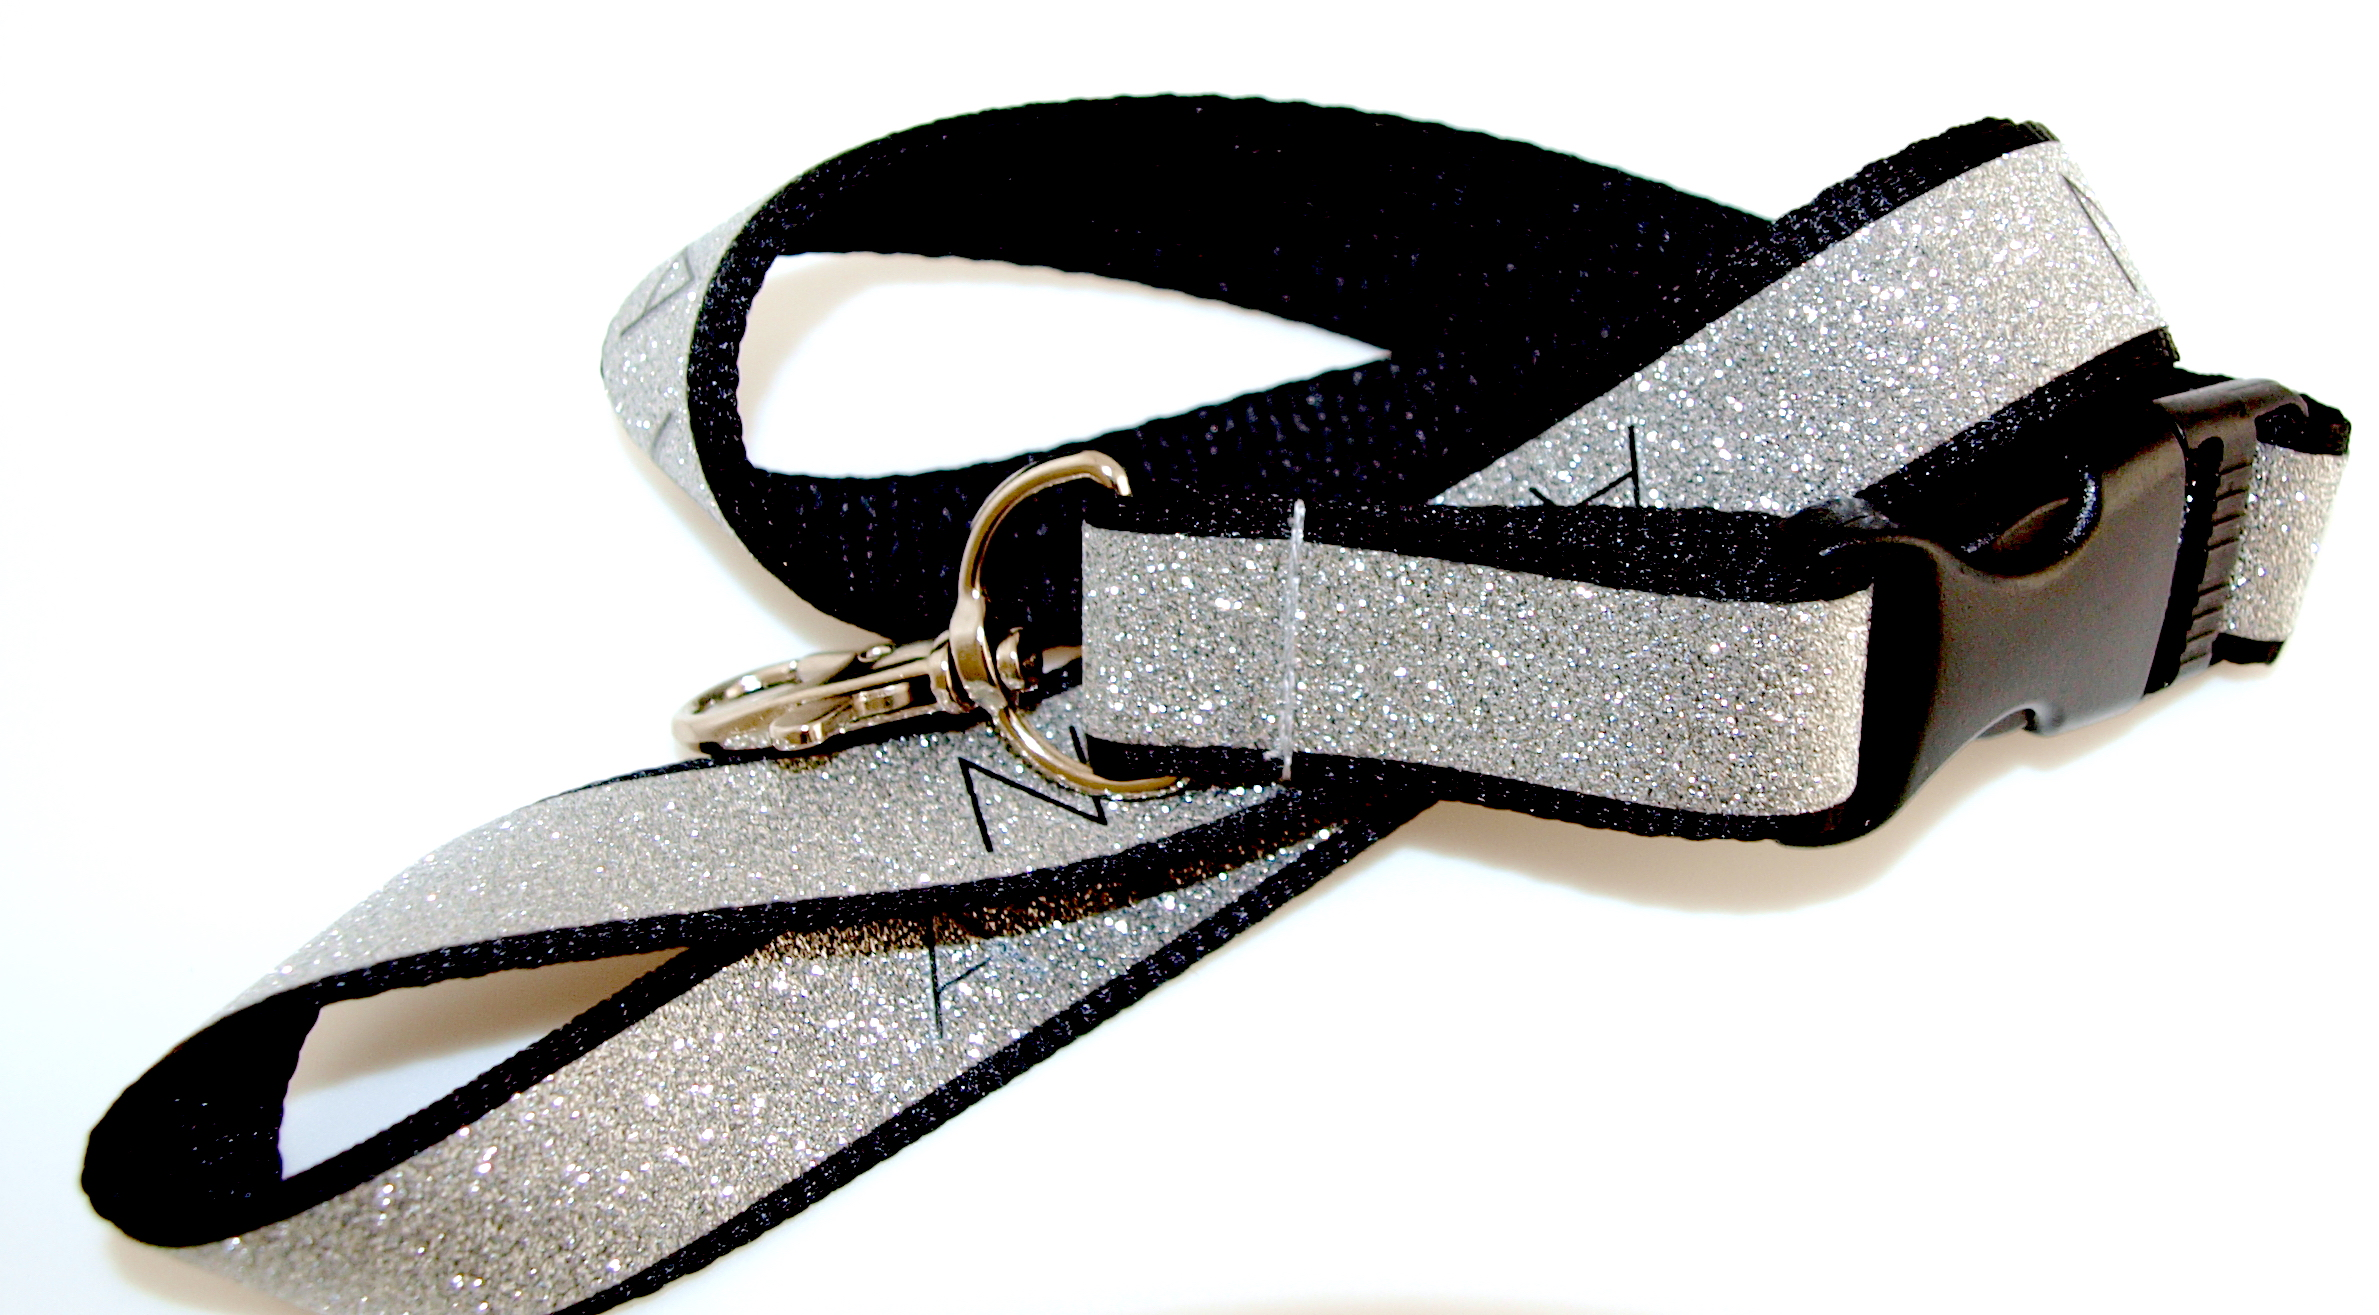 Lanyard with glitter effect